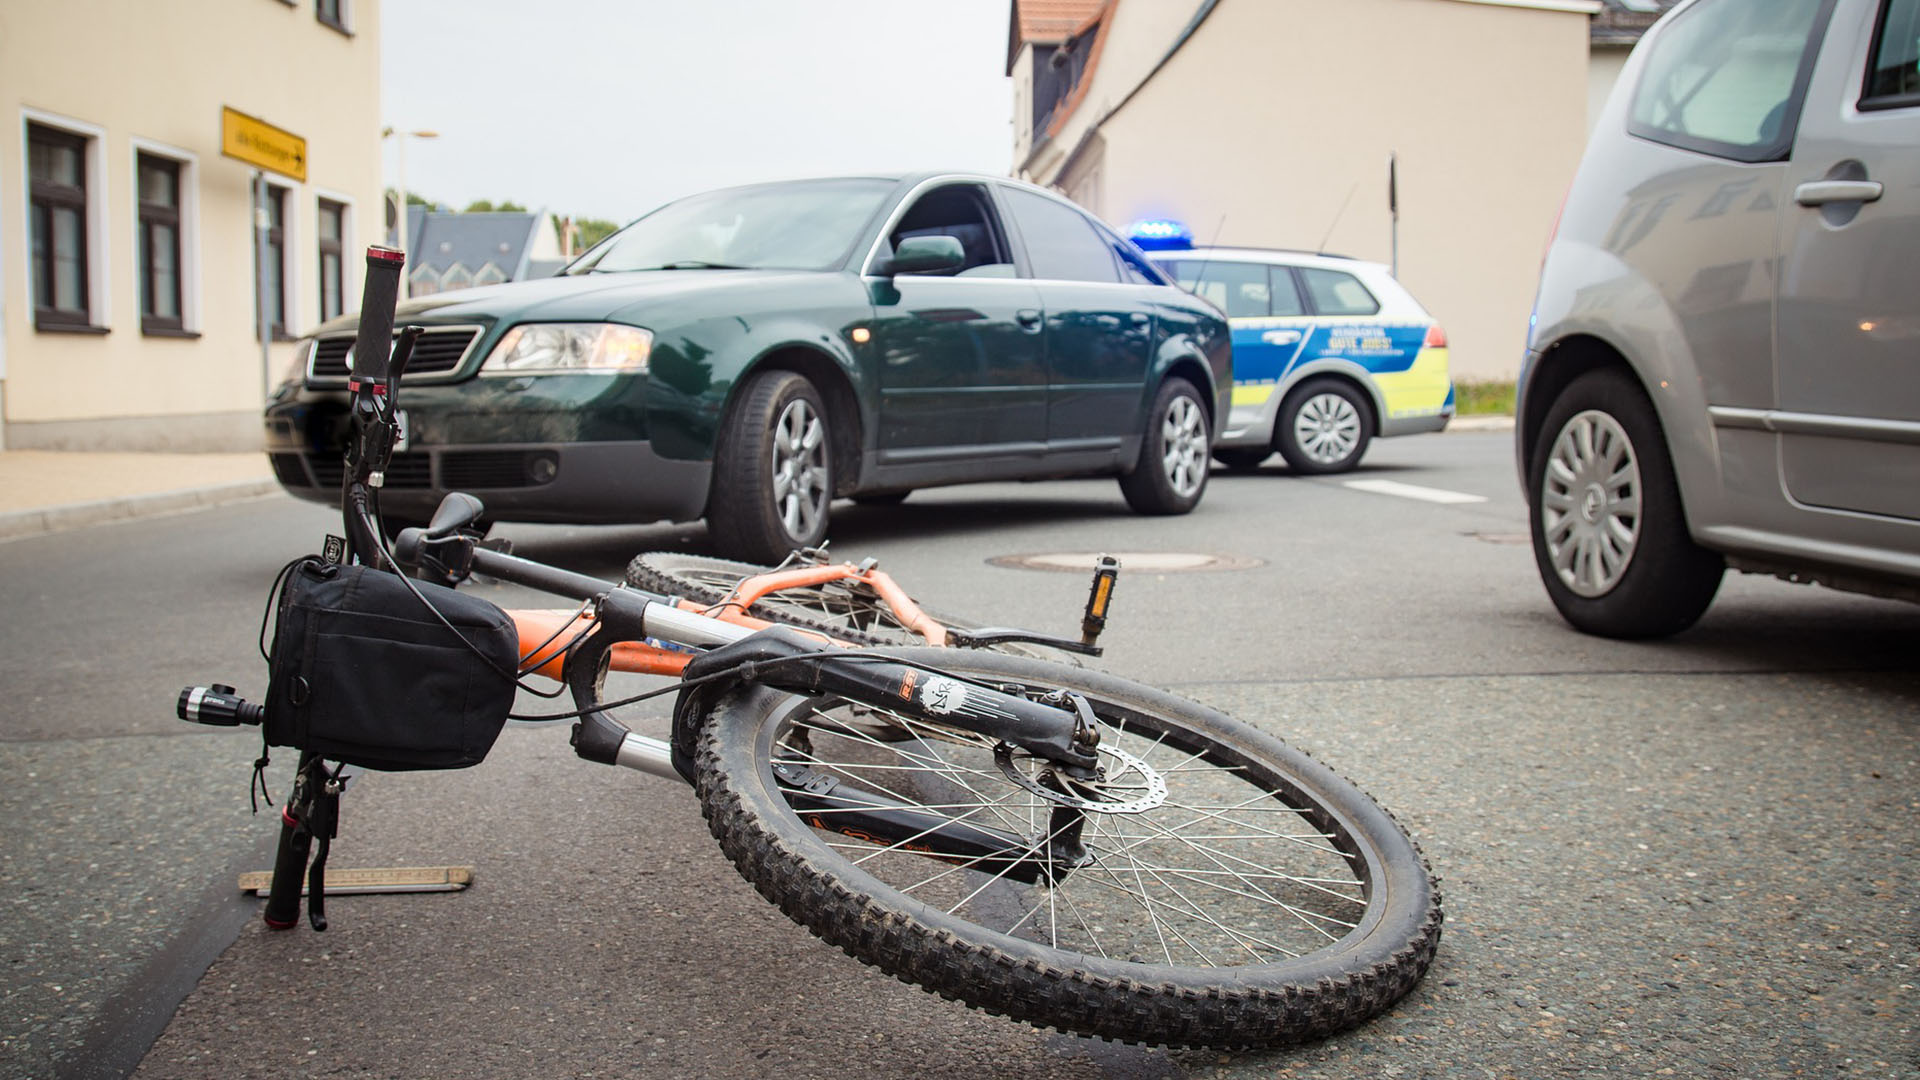 Bicycle Laying on Ground by Cars